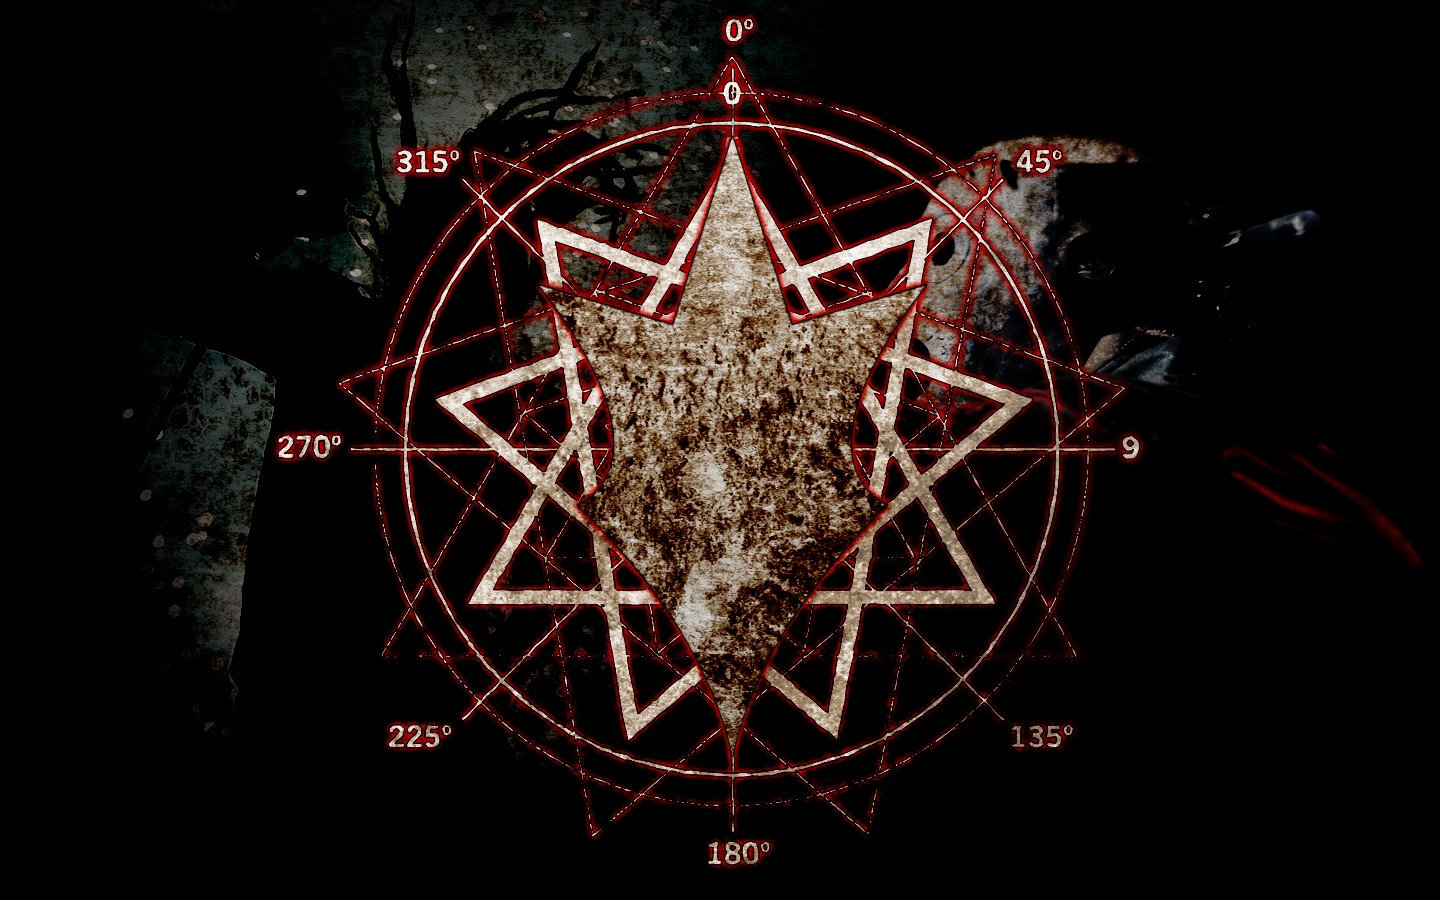 Occult Computer Wallpapers Desktop Backgrounds 1440x900 ID307119 1440x900